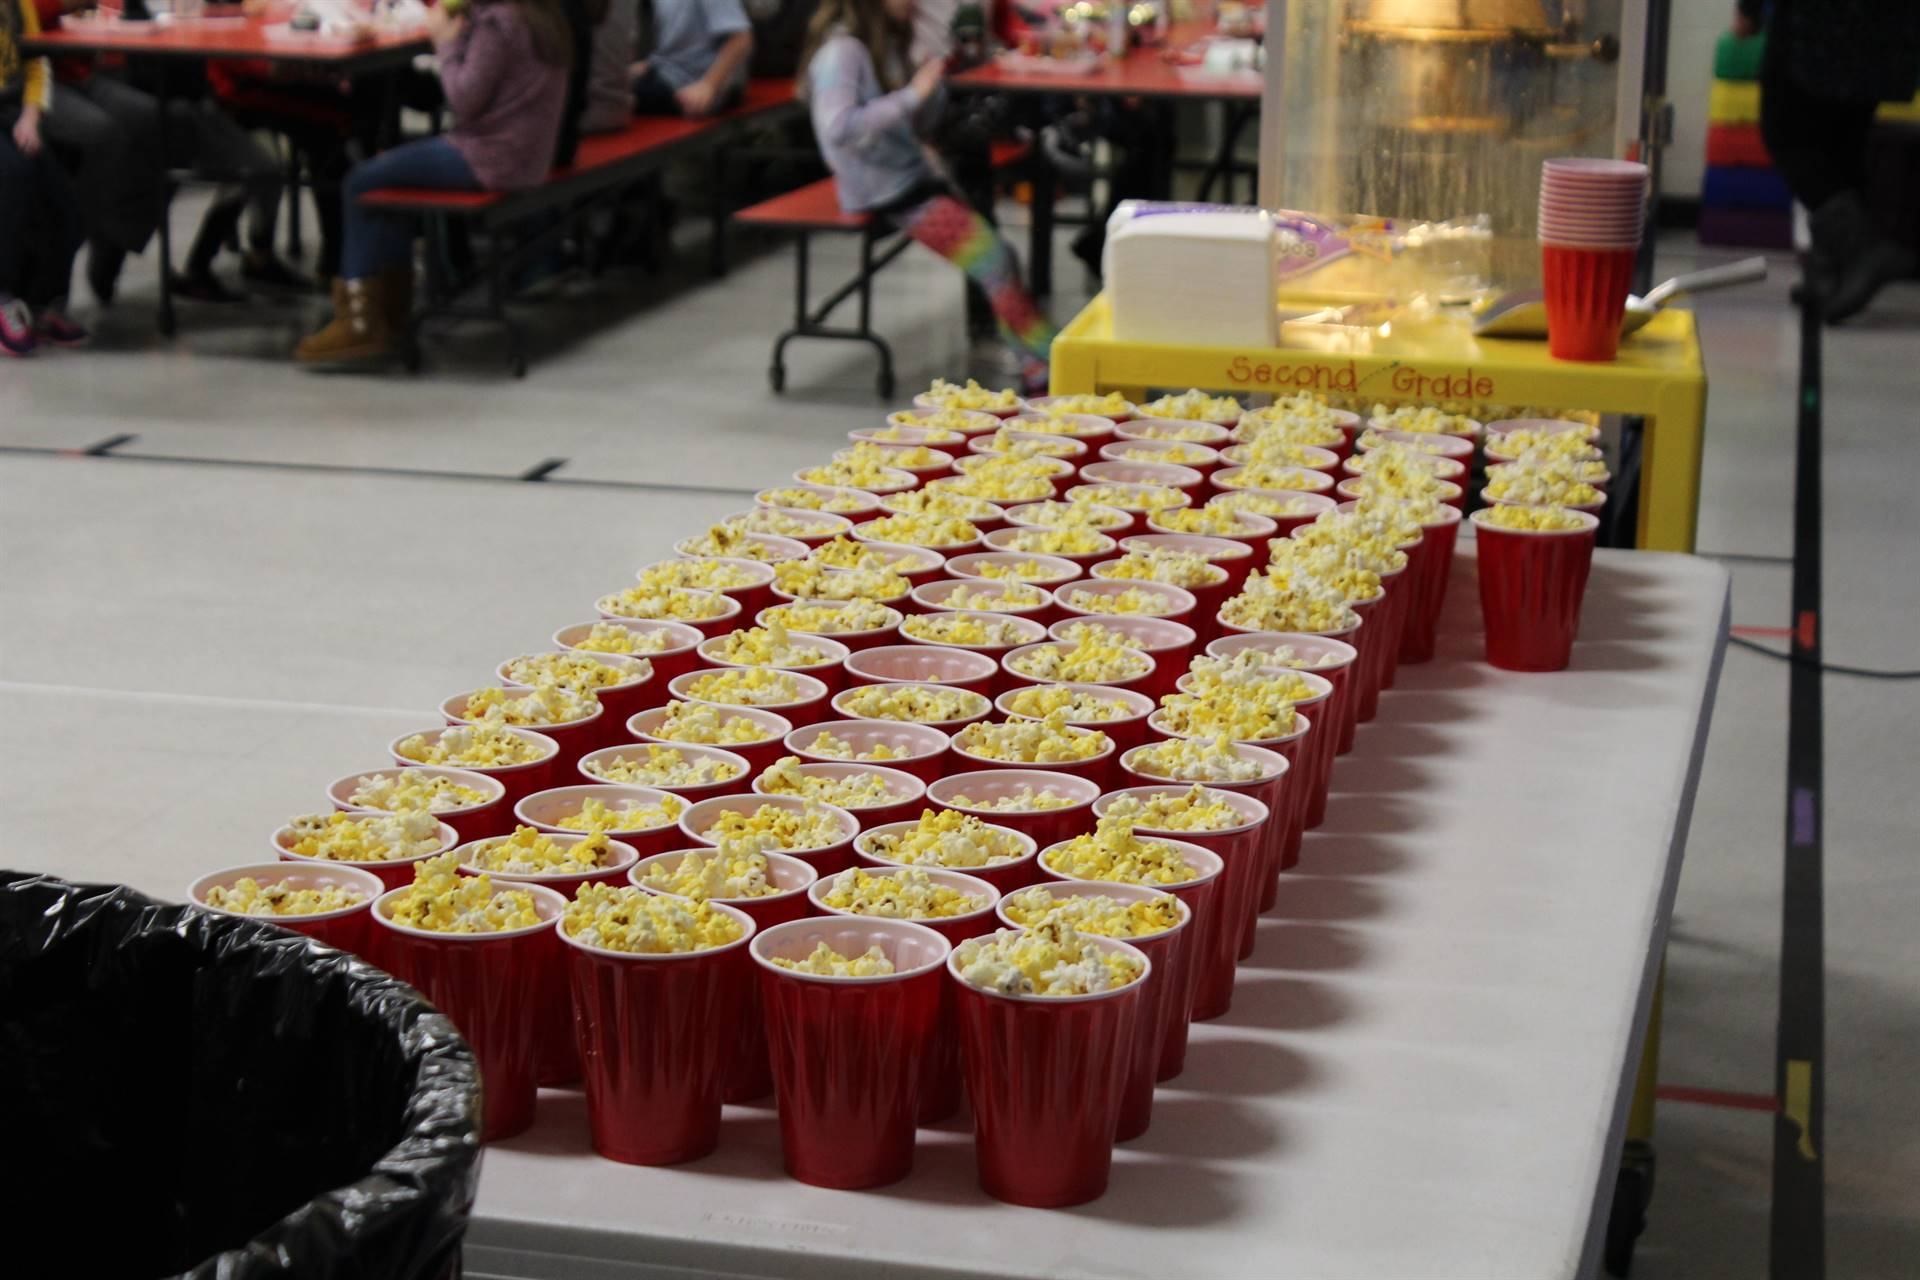 Cups filled with popcorn